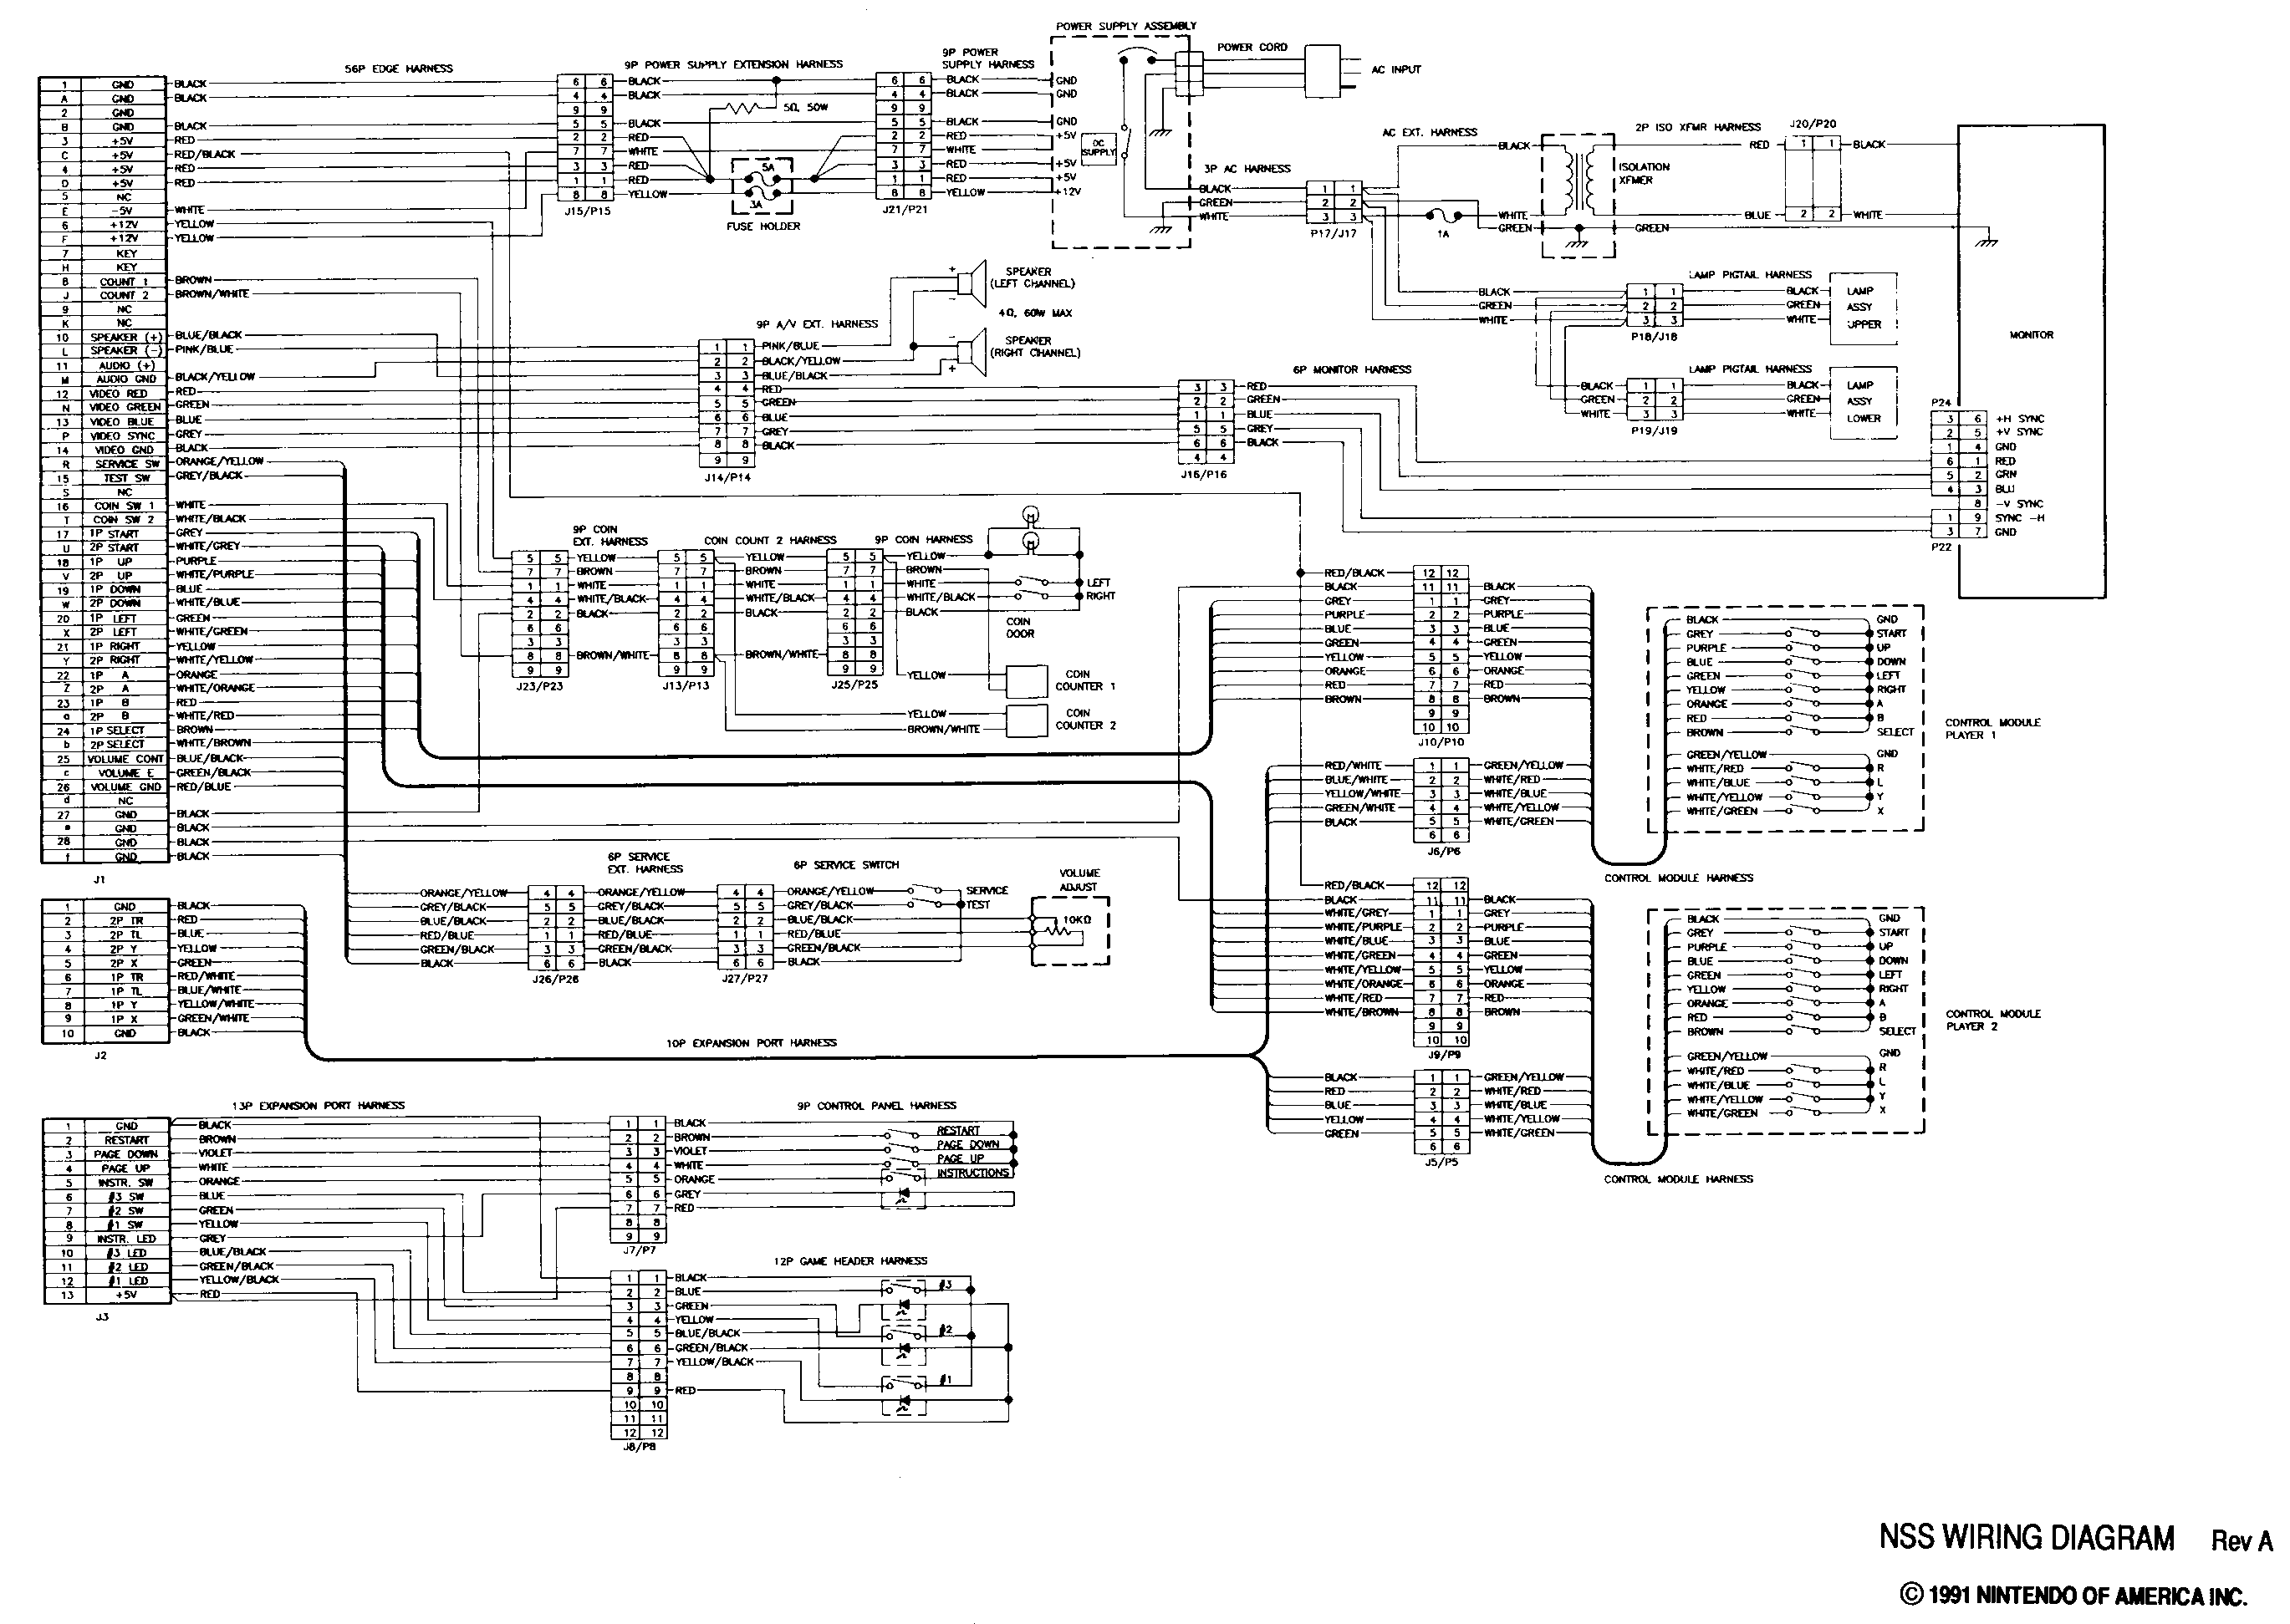 arcade control panel wiring diagram arcade game wiring diagram found: nss schematic - klov/vaps coin-op videogame ... #4